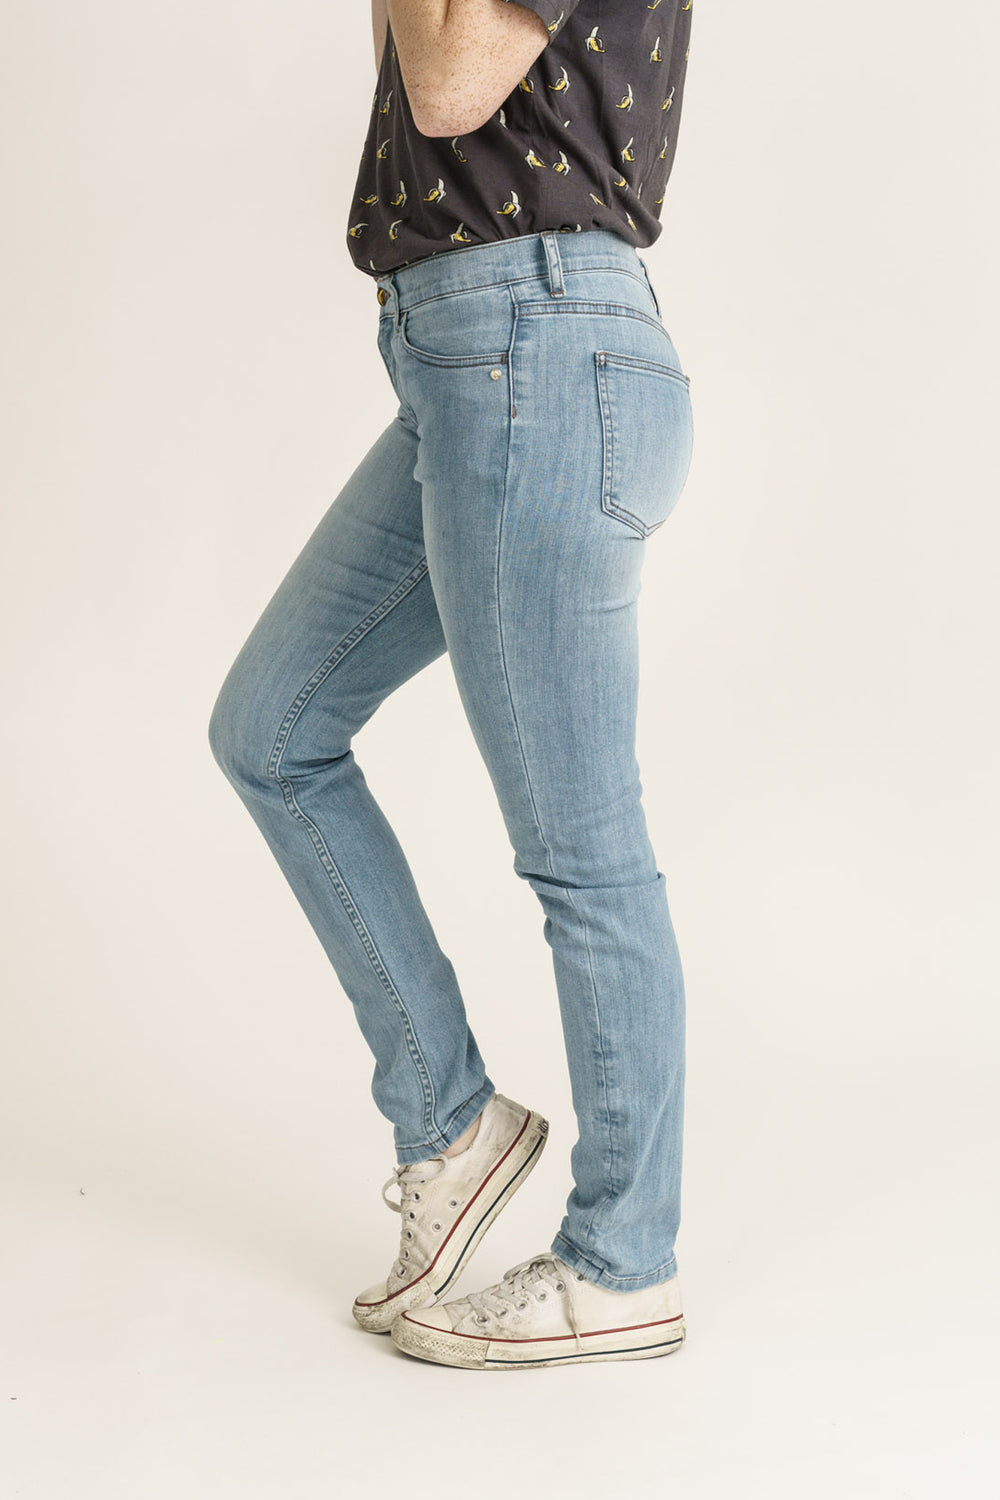 CLASSIC SKINNY // Organic Classic Skinny Jeans in Light Blue Wash - Monkee Genes Organic Jeans Denim - Women's Classic Skinny Monkee Genes Official  Monkee Genes Official